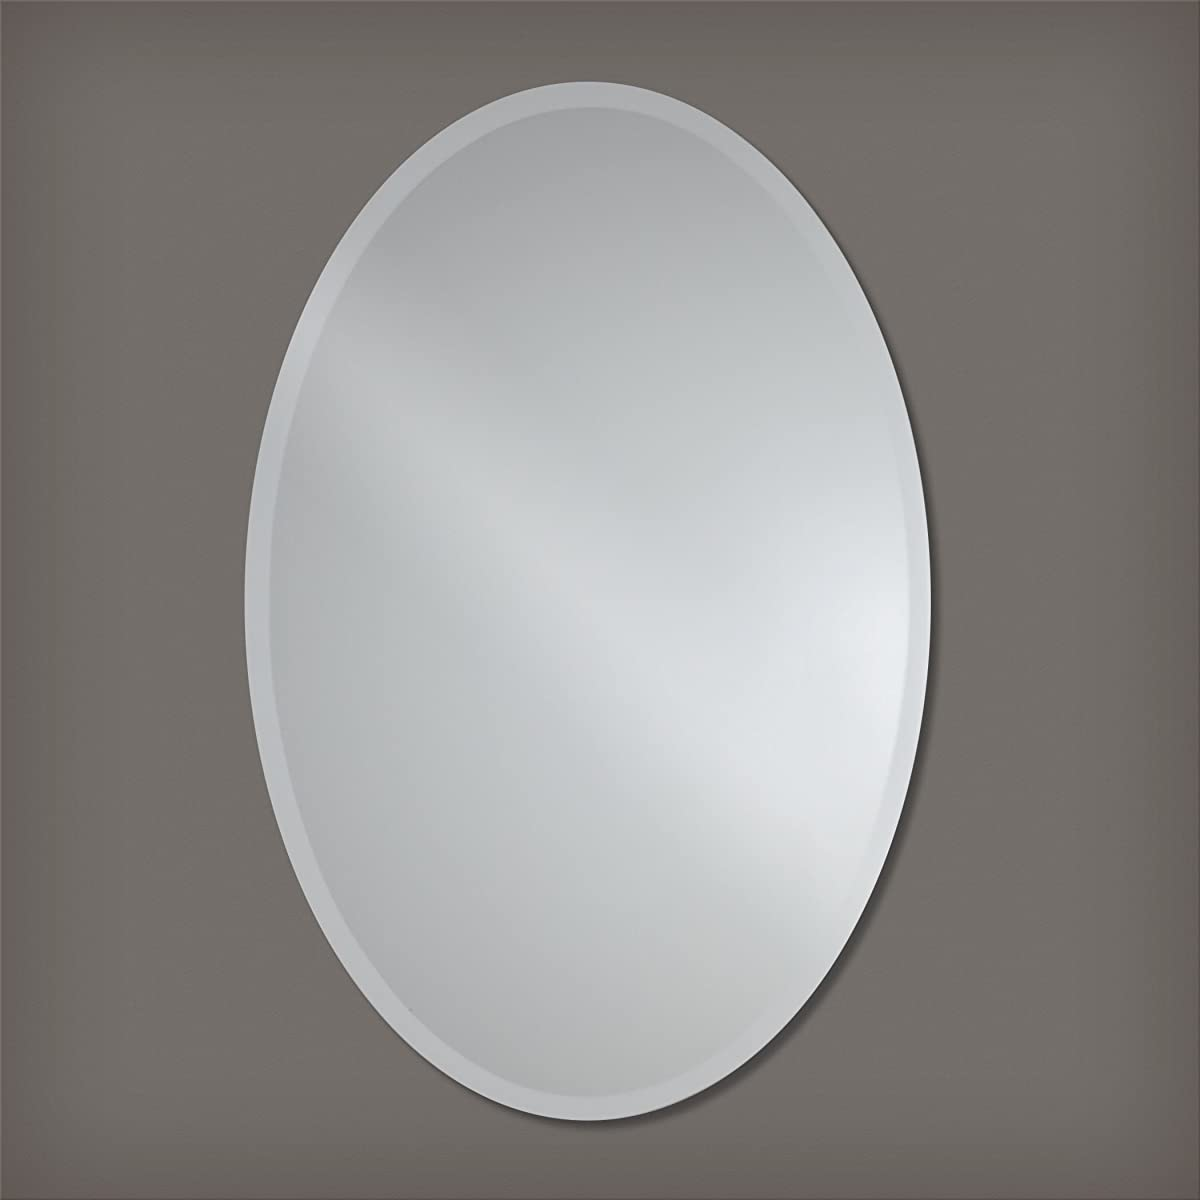 Large Frameless Beveled Oval Wall Mirror | Bathroom, Vanity, Bedroom Mirror | 24-inch x 36-inch